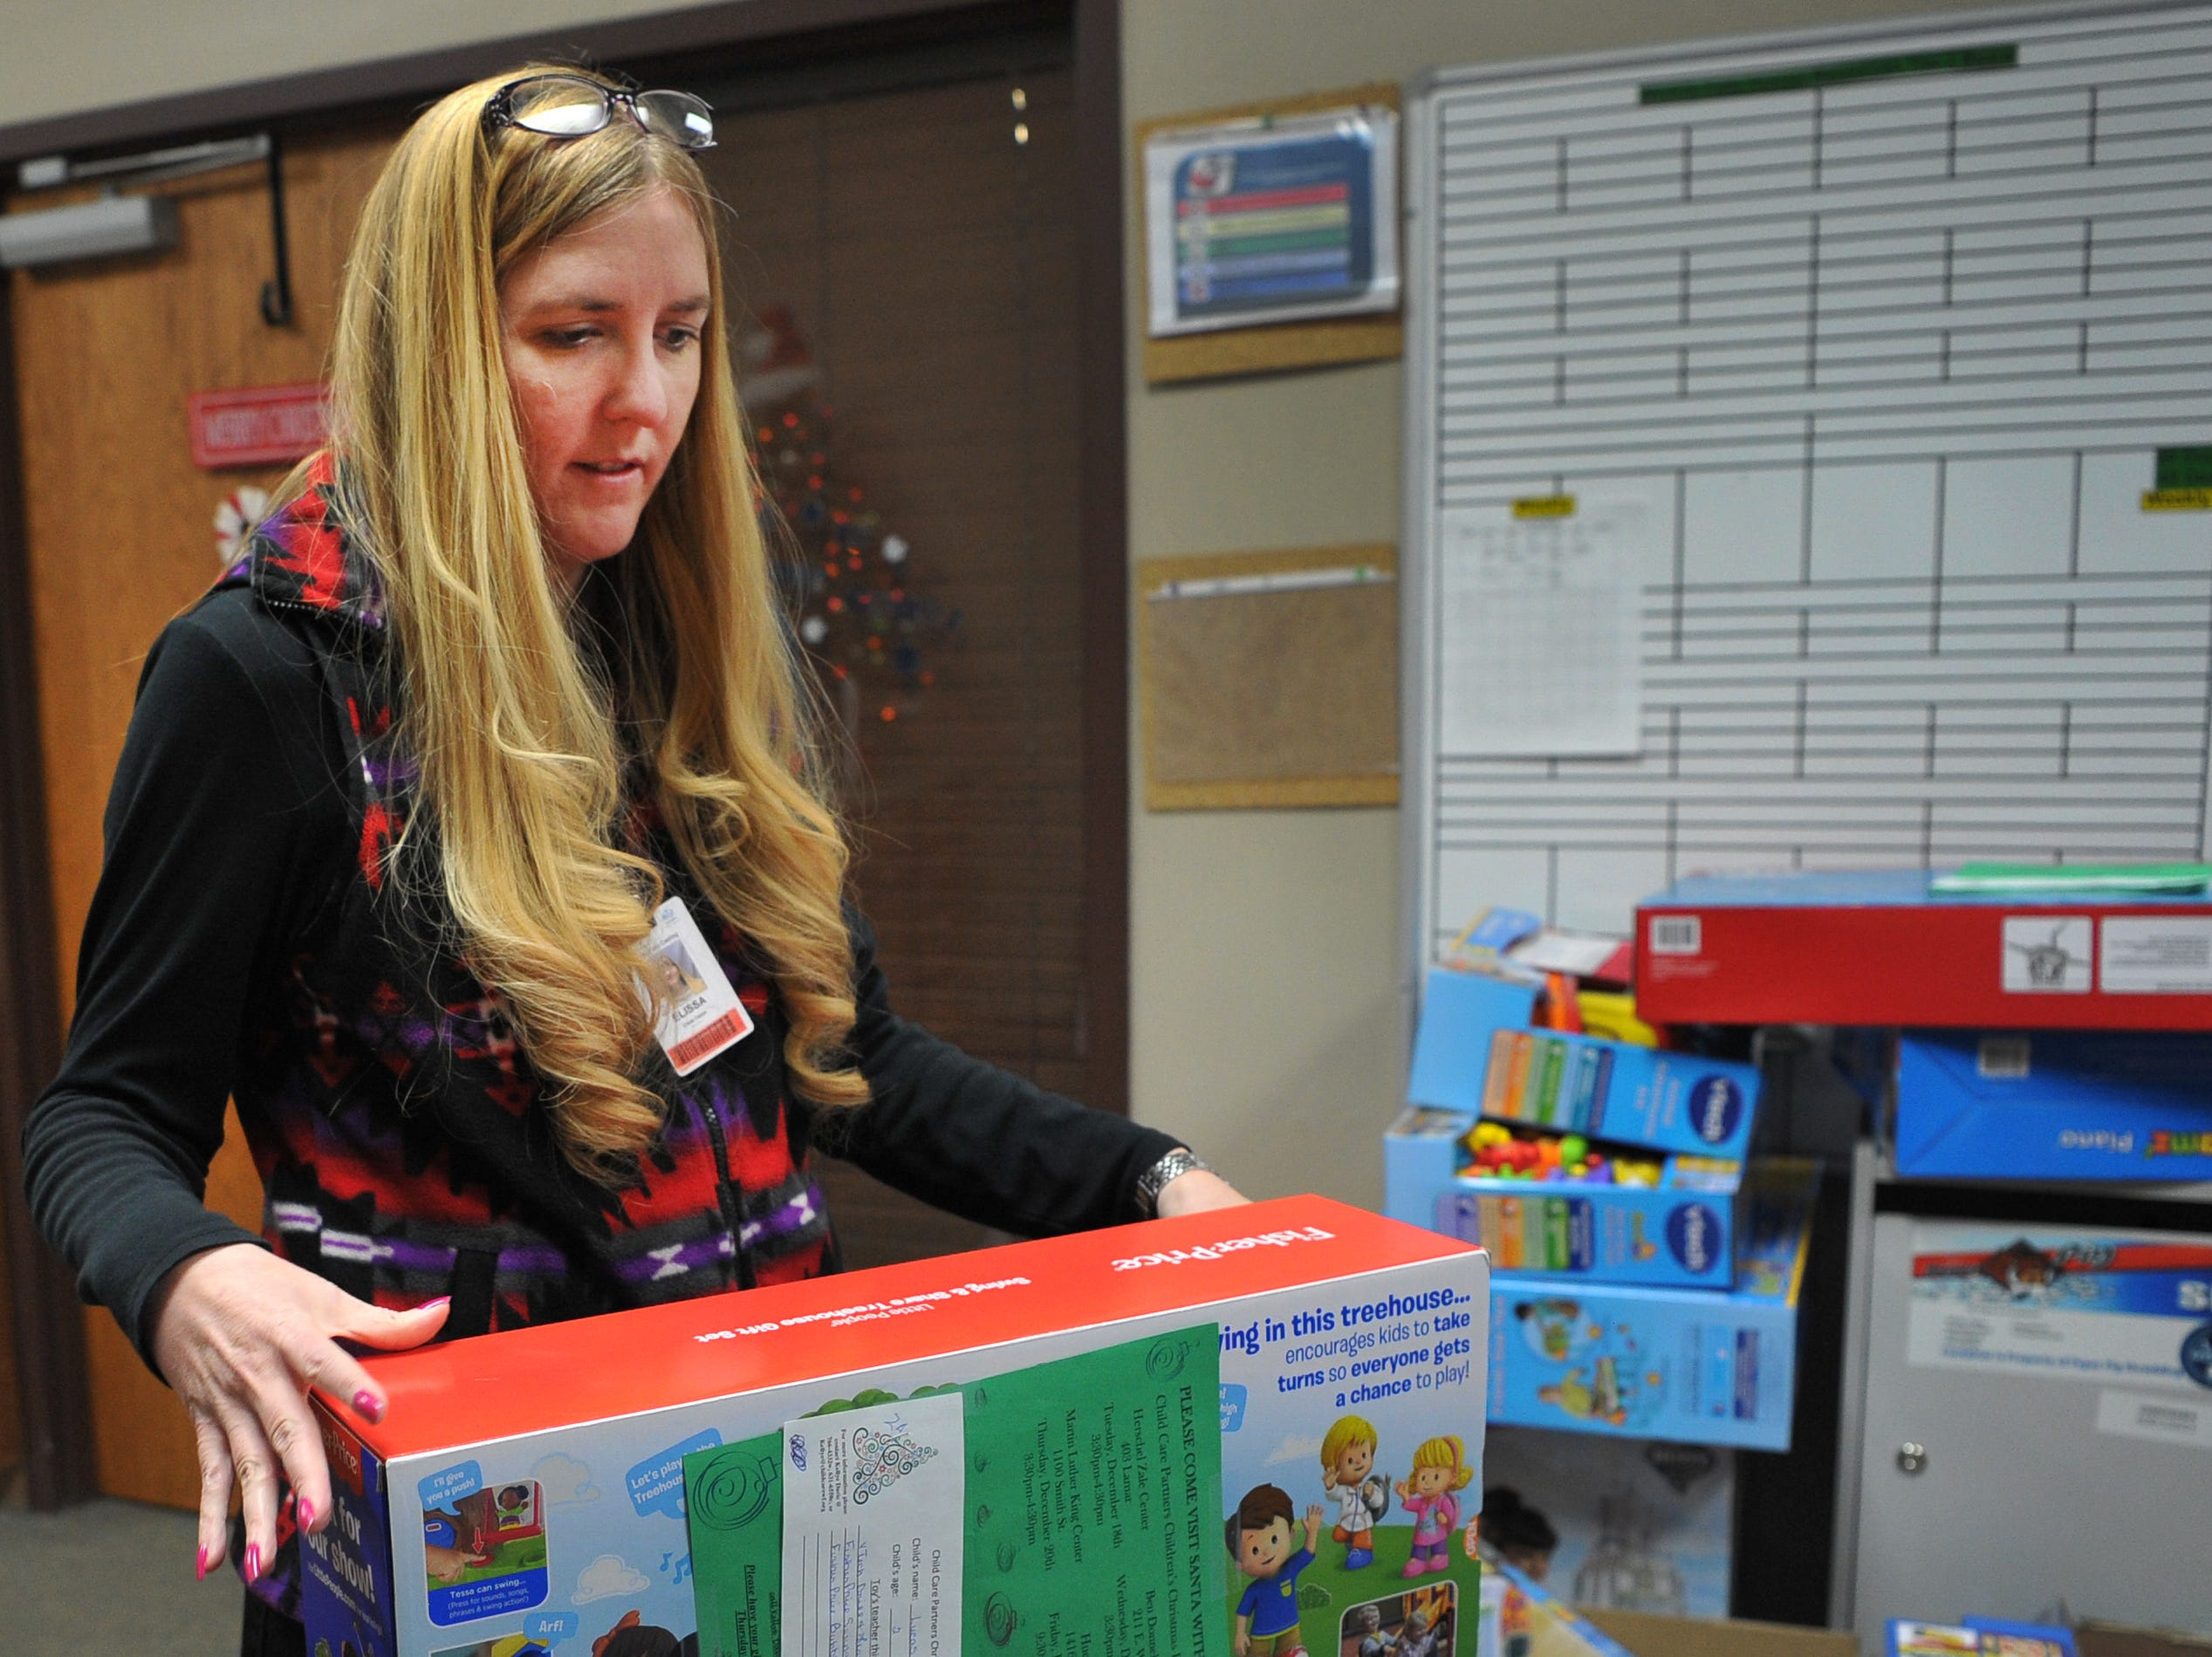 Alcoa Human Resource Specialist, Elissa Depew helps sort toys donated by Alcoa employees to Wichita Falls area Child Care Partners children Thursday afternoon.